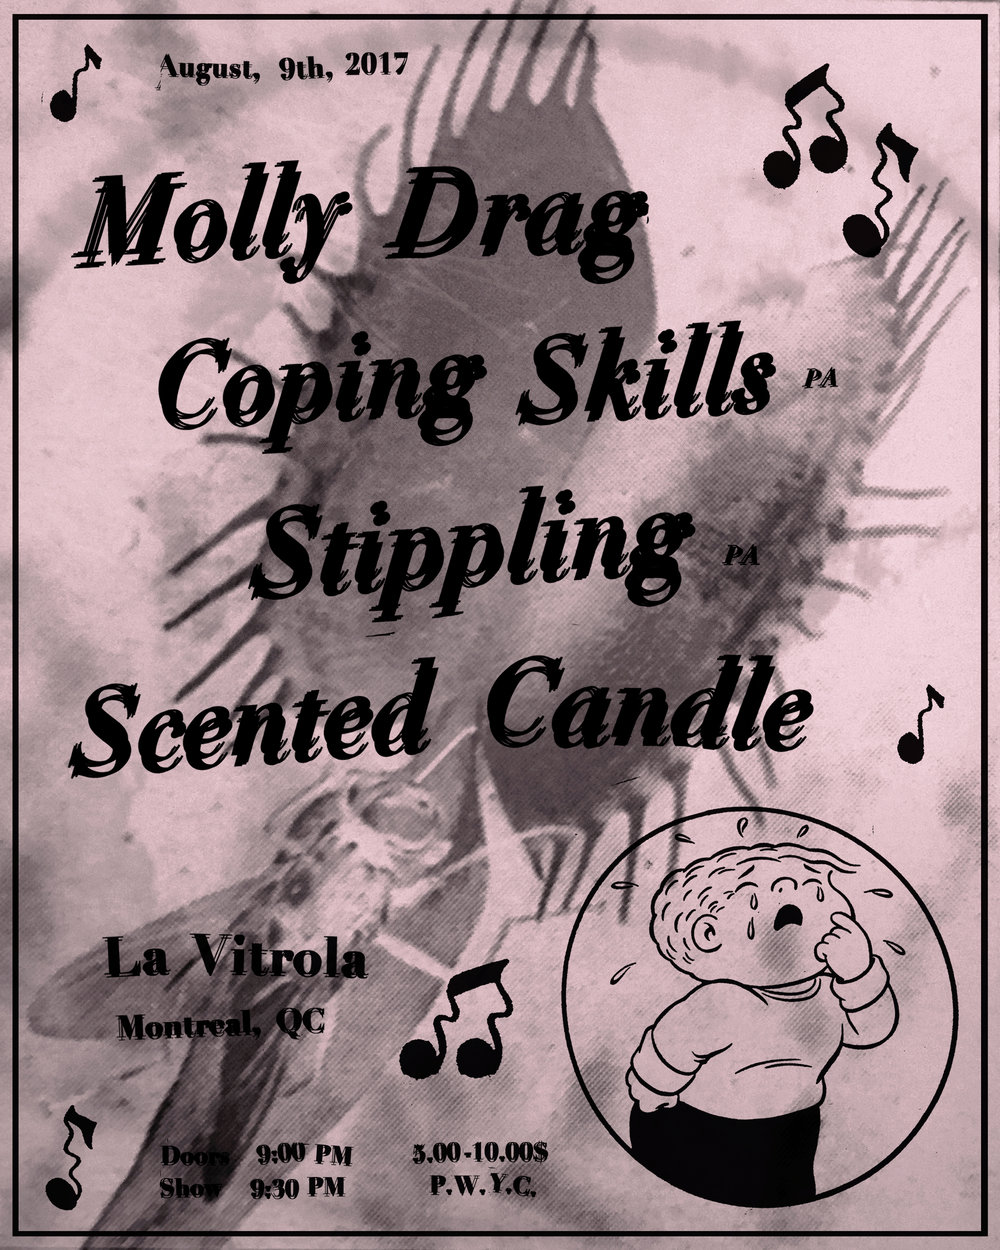 Flyer-MollyDrag89-BWPinks2 copy.jpg